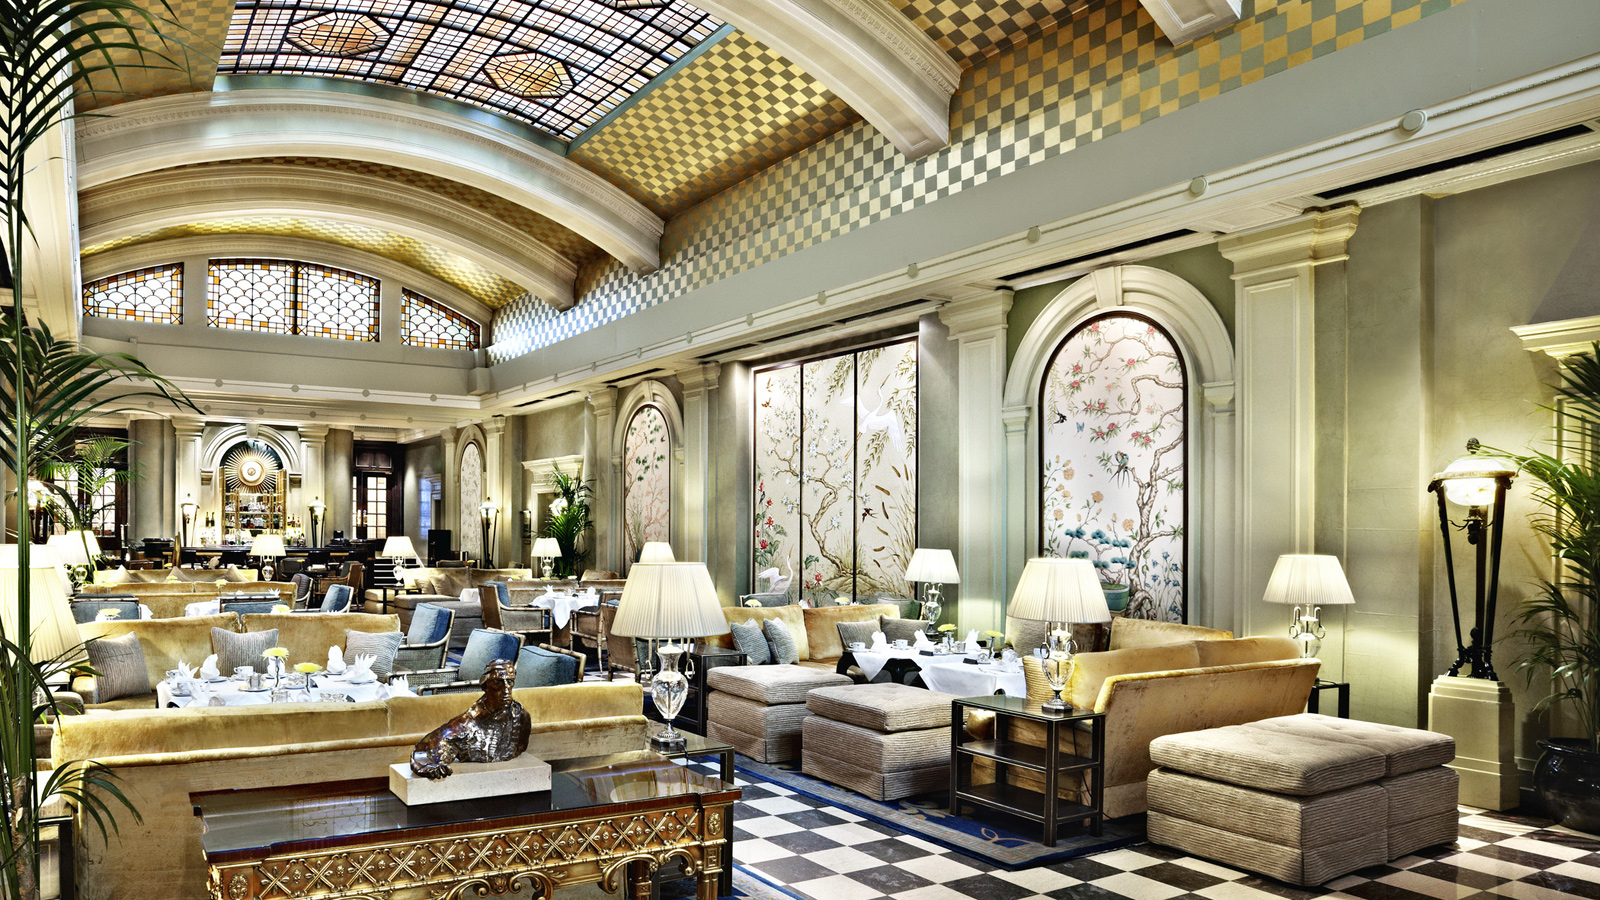 The Palm Court Lounge